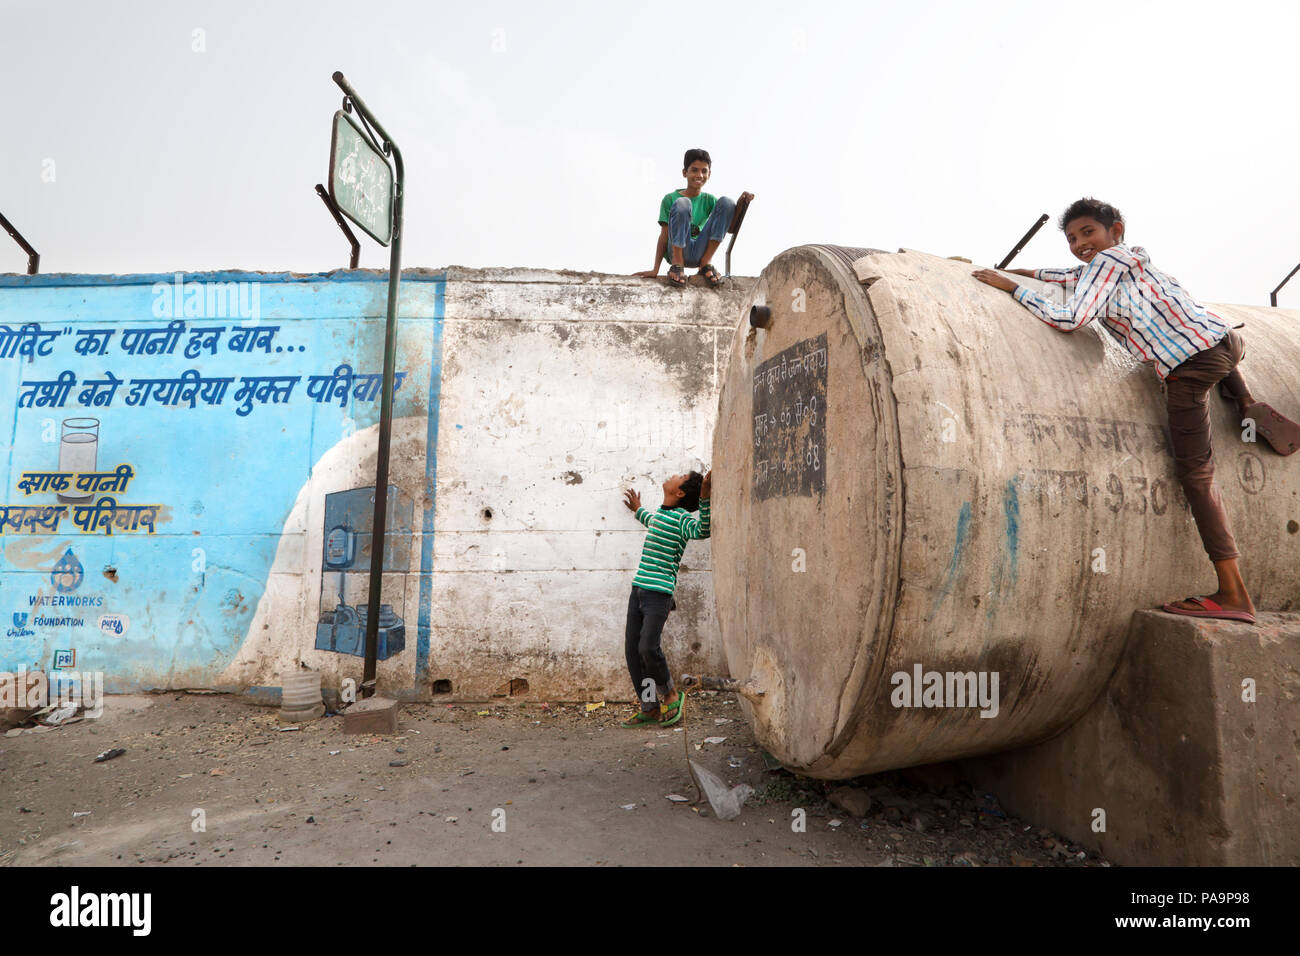 People living in Arif Nagar area, near the abandoned Union Carbide industrial complex, Bhopal, India - Stock Image